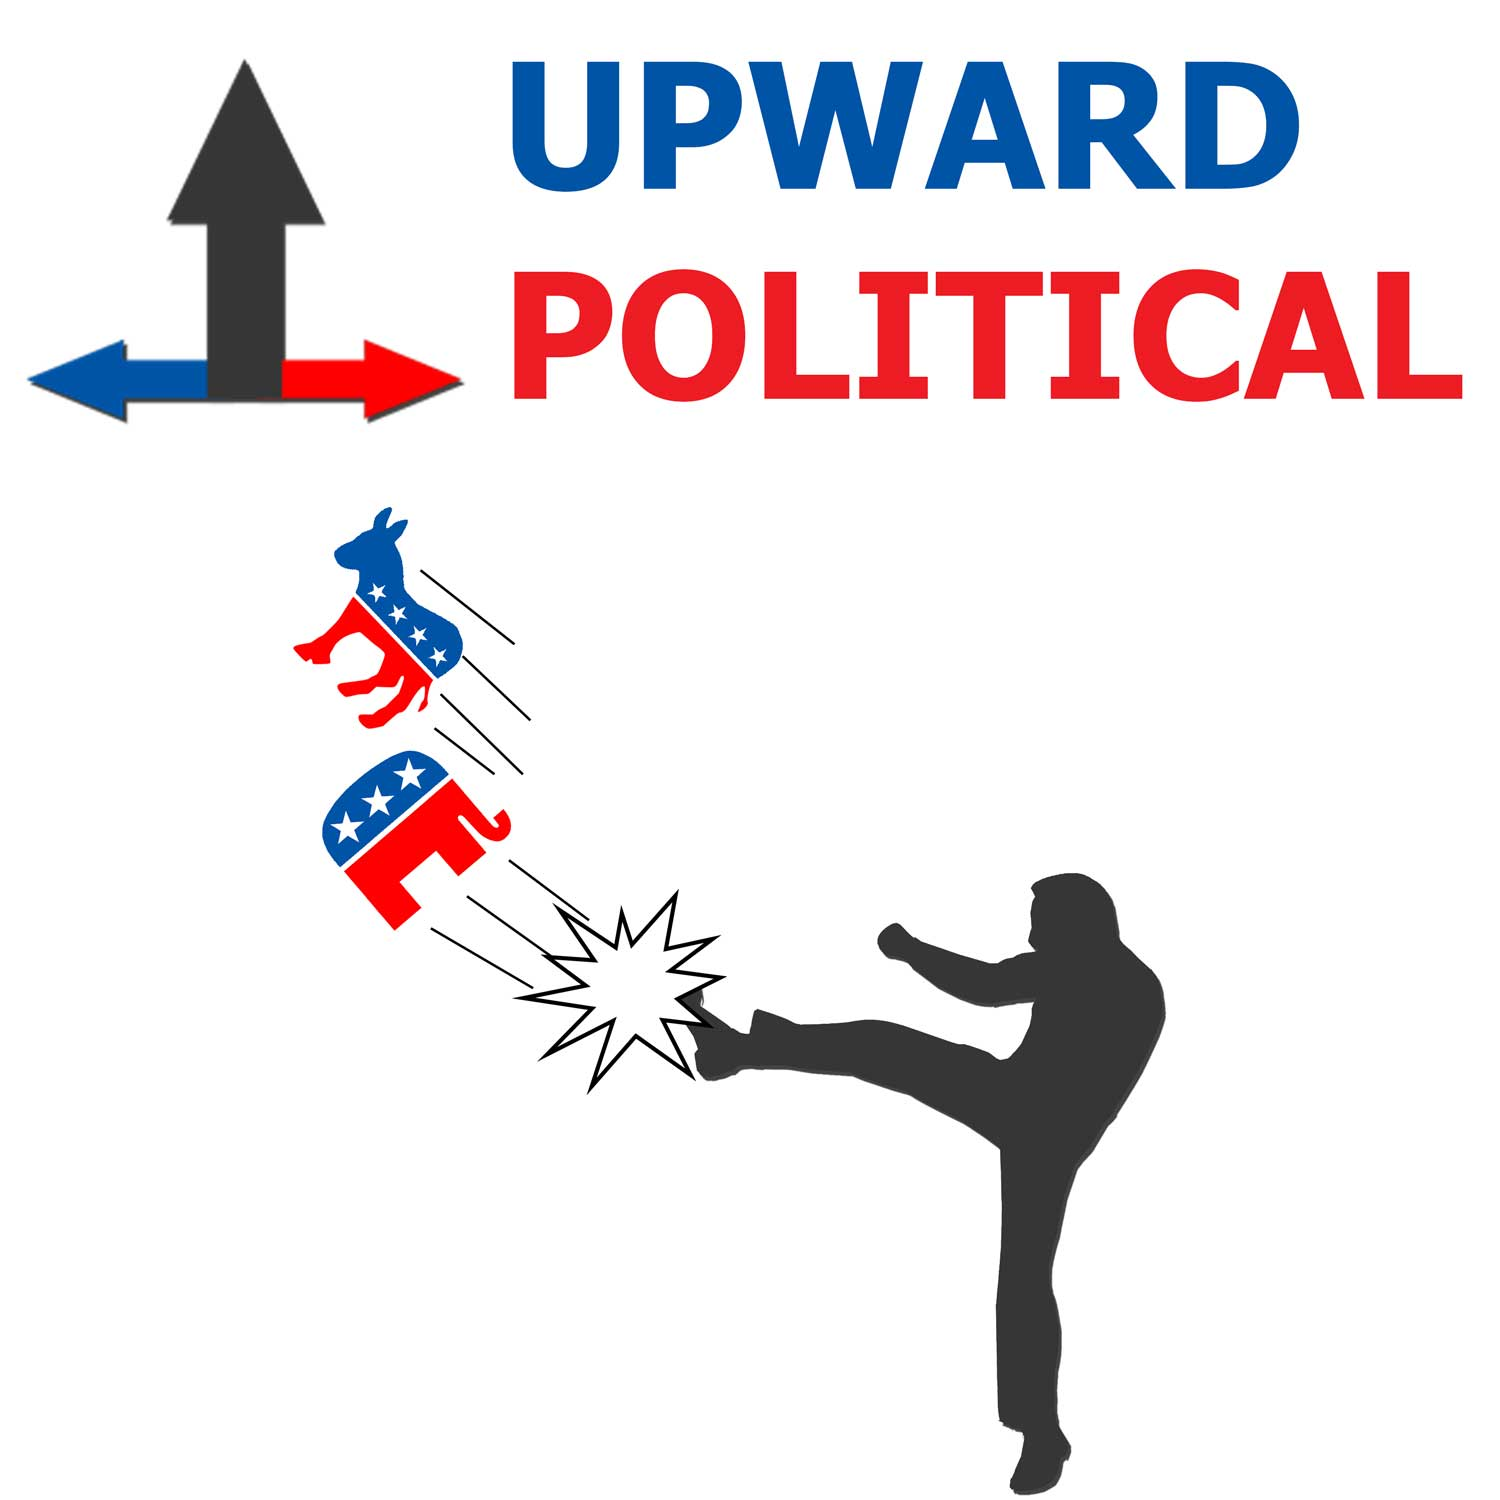 Upward Politics Cover Art of a Man punting the logos for the republican and democrat parties